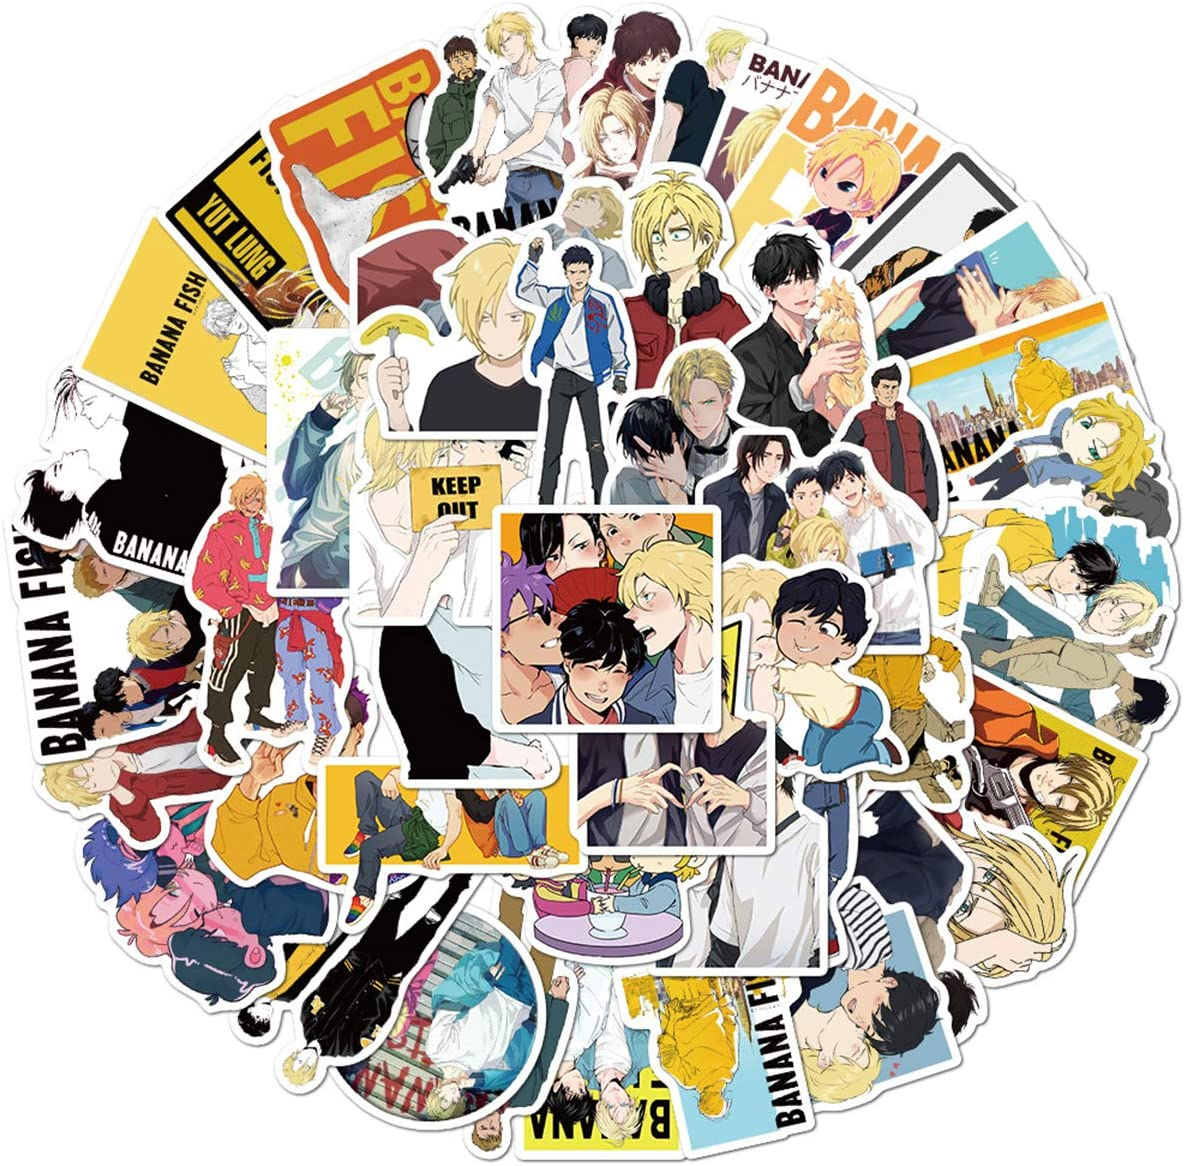 Banana Fish Stickers, 50pcs, Japanese Anime Movie Decals, for Laptop, Water Bottle, Car, Skateboard, as Gift and Decoration, Waterproof. Banana Fish